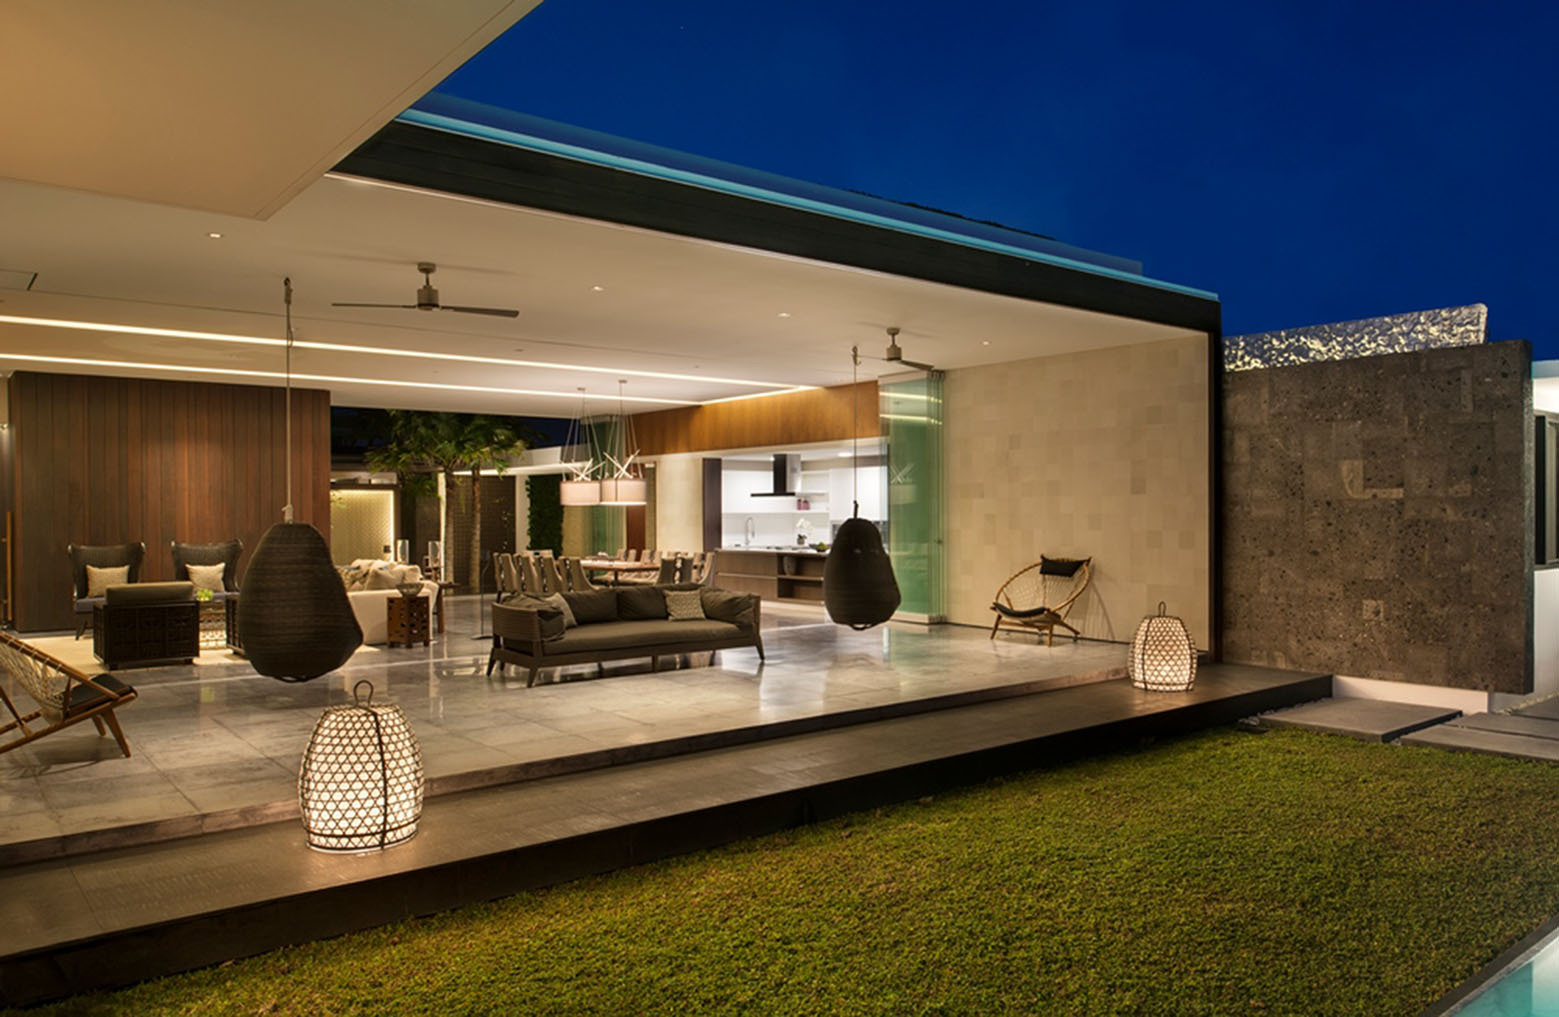 Modern Resort Villa With Balinese Theme | iDesignArch ...